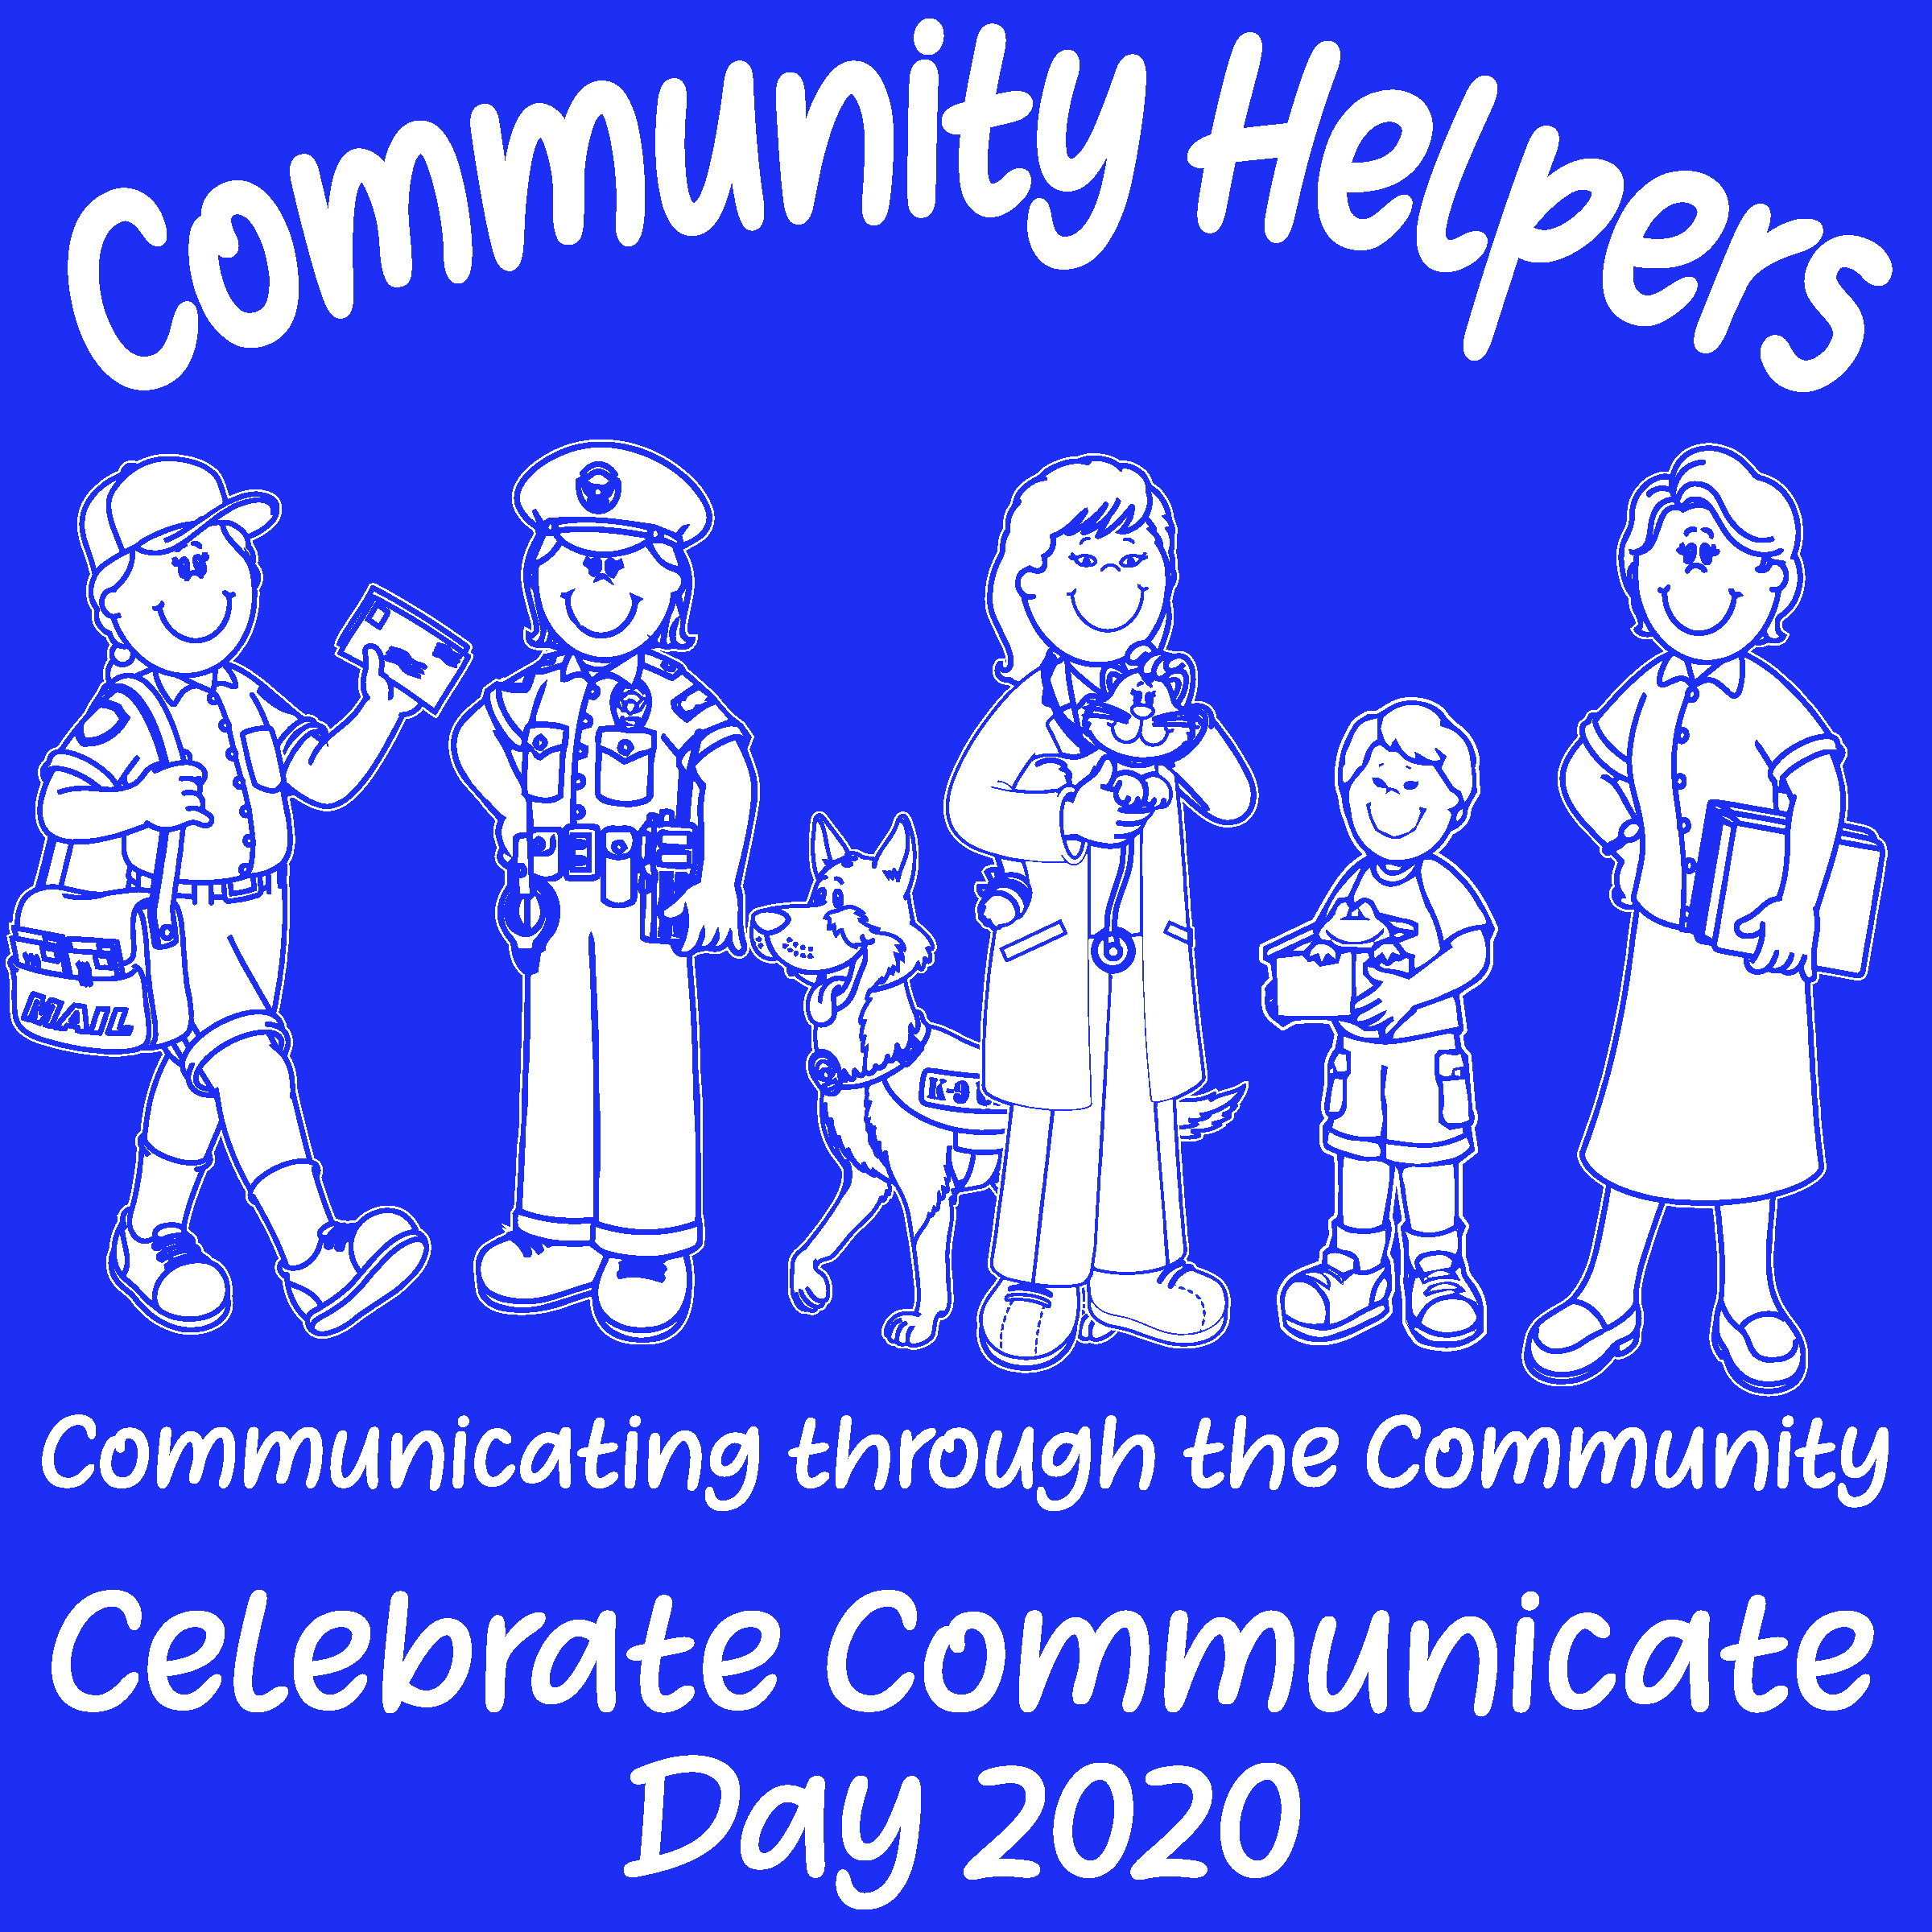 CC Day Logo: Communicating through the Community